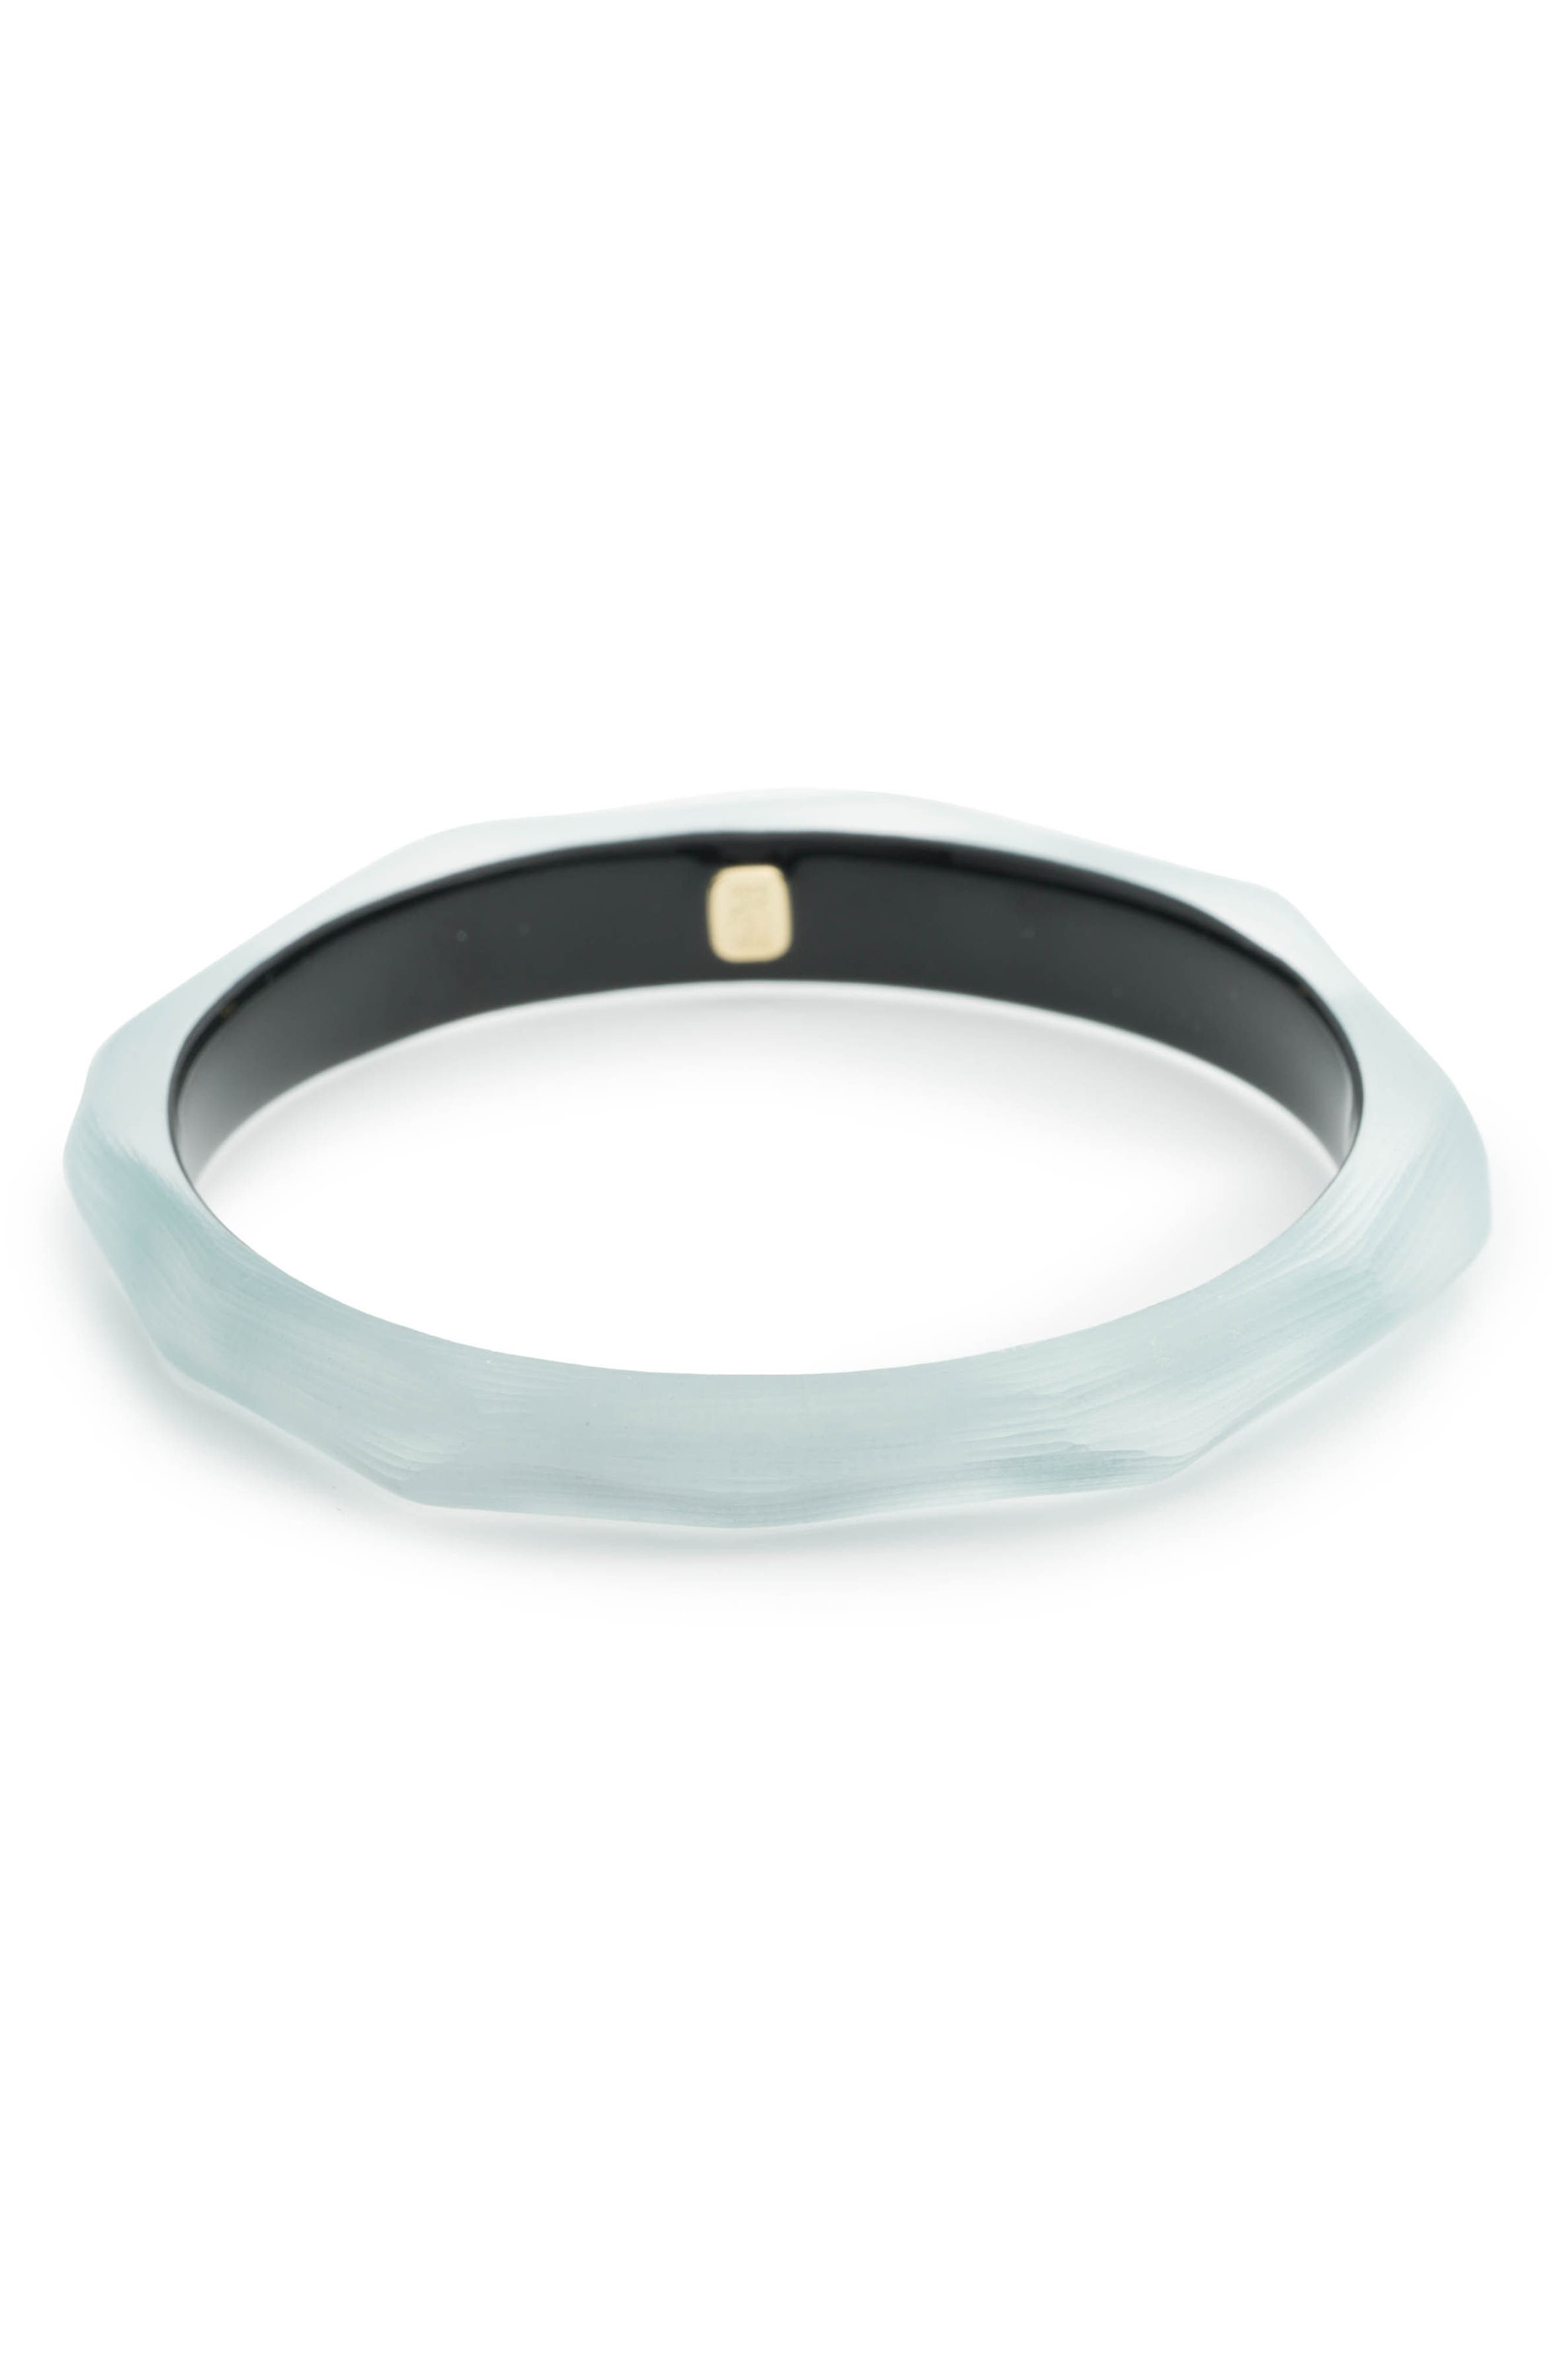 Faceted Lucite<sup>®</sup> Bangle,                             Alternate thumbnail 2, color,                             050